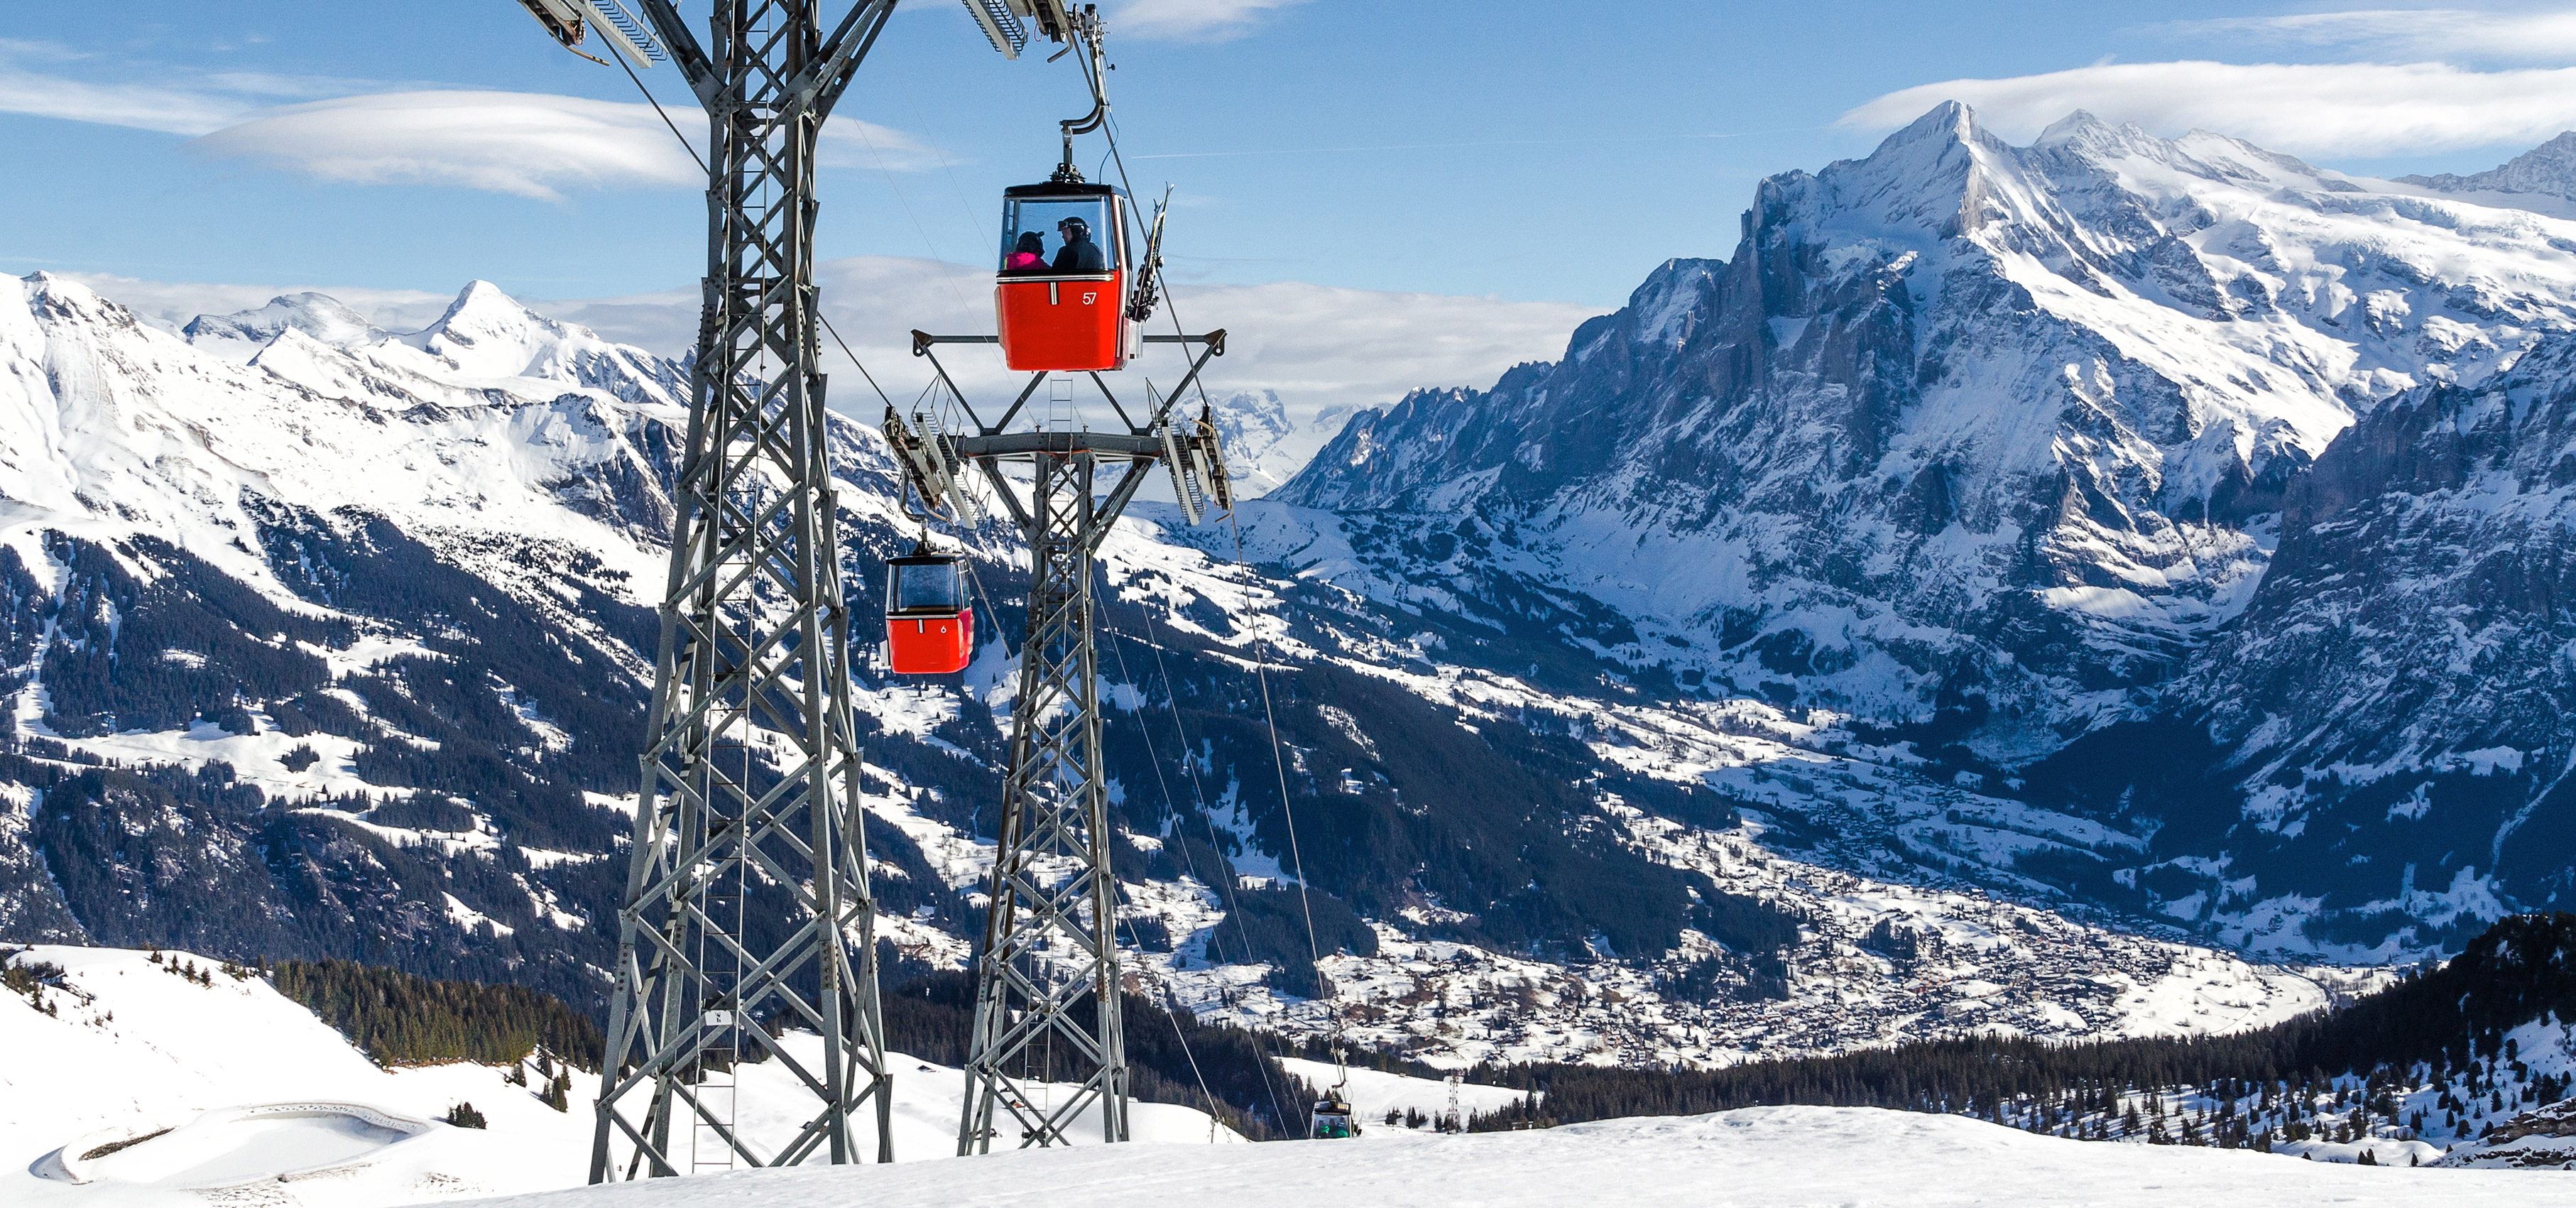 Alpine Ski Instructors The Ec Vs Austria News Investors In Property